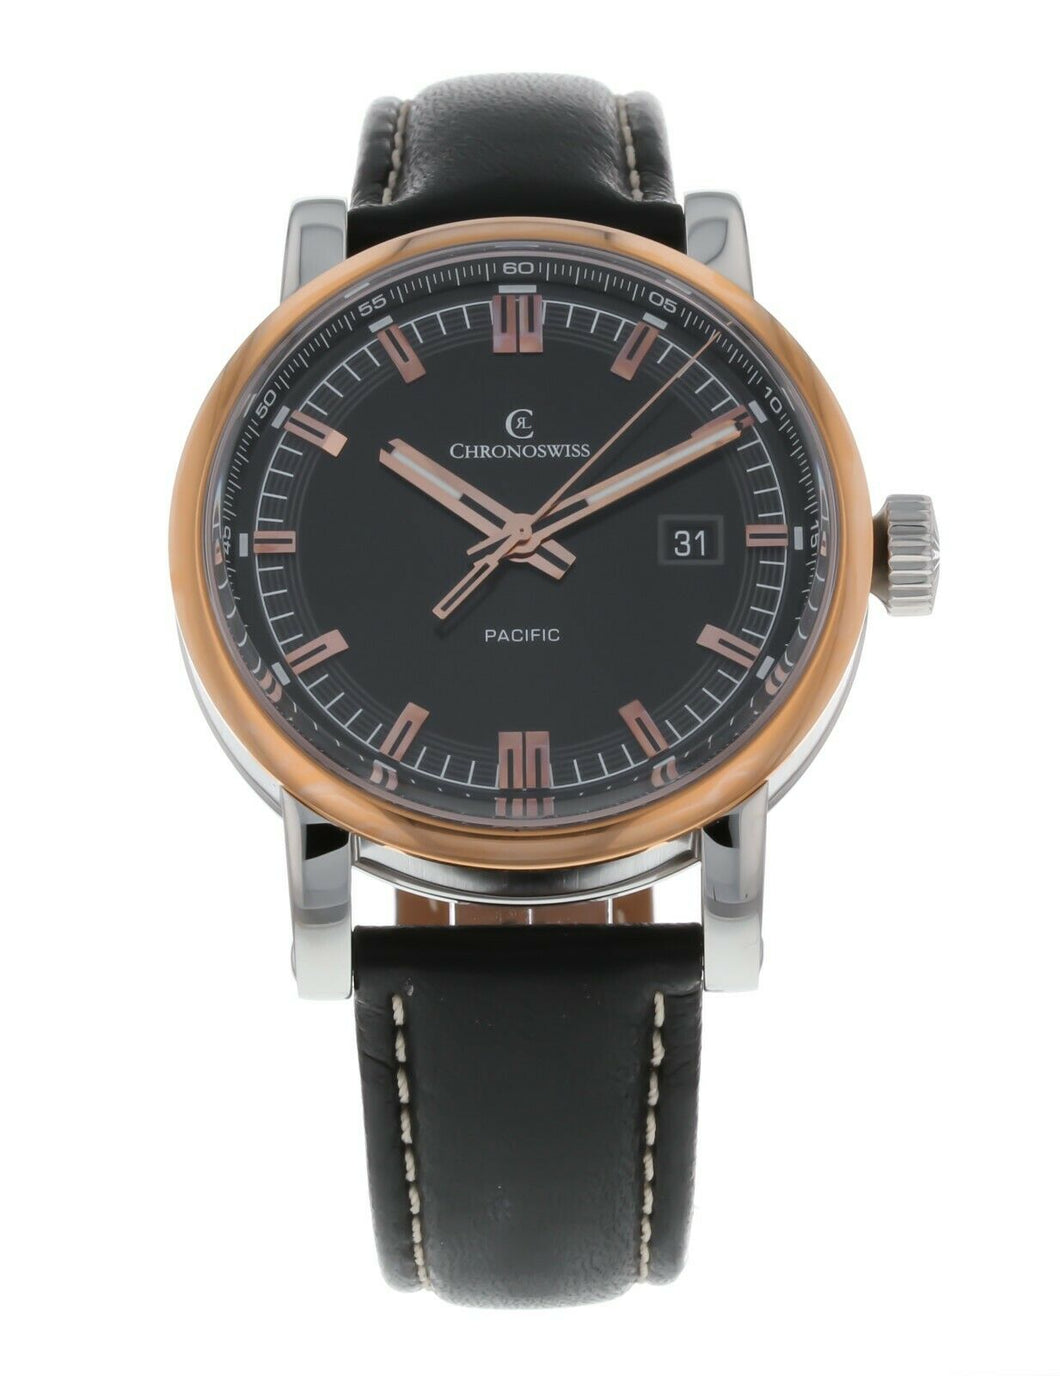 Chronoswiss Grand Pacific Automatic Black Dial Men's Watch CH-2882BR-BK/31-1